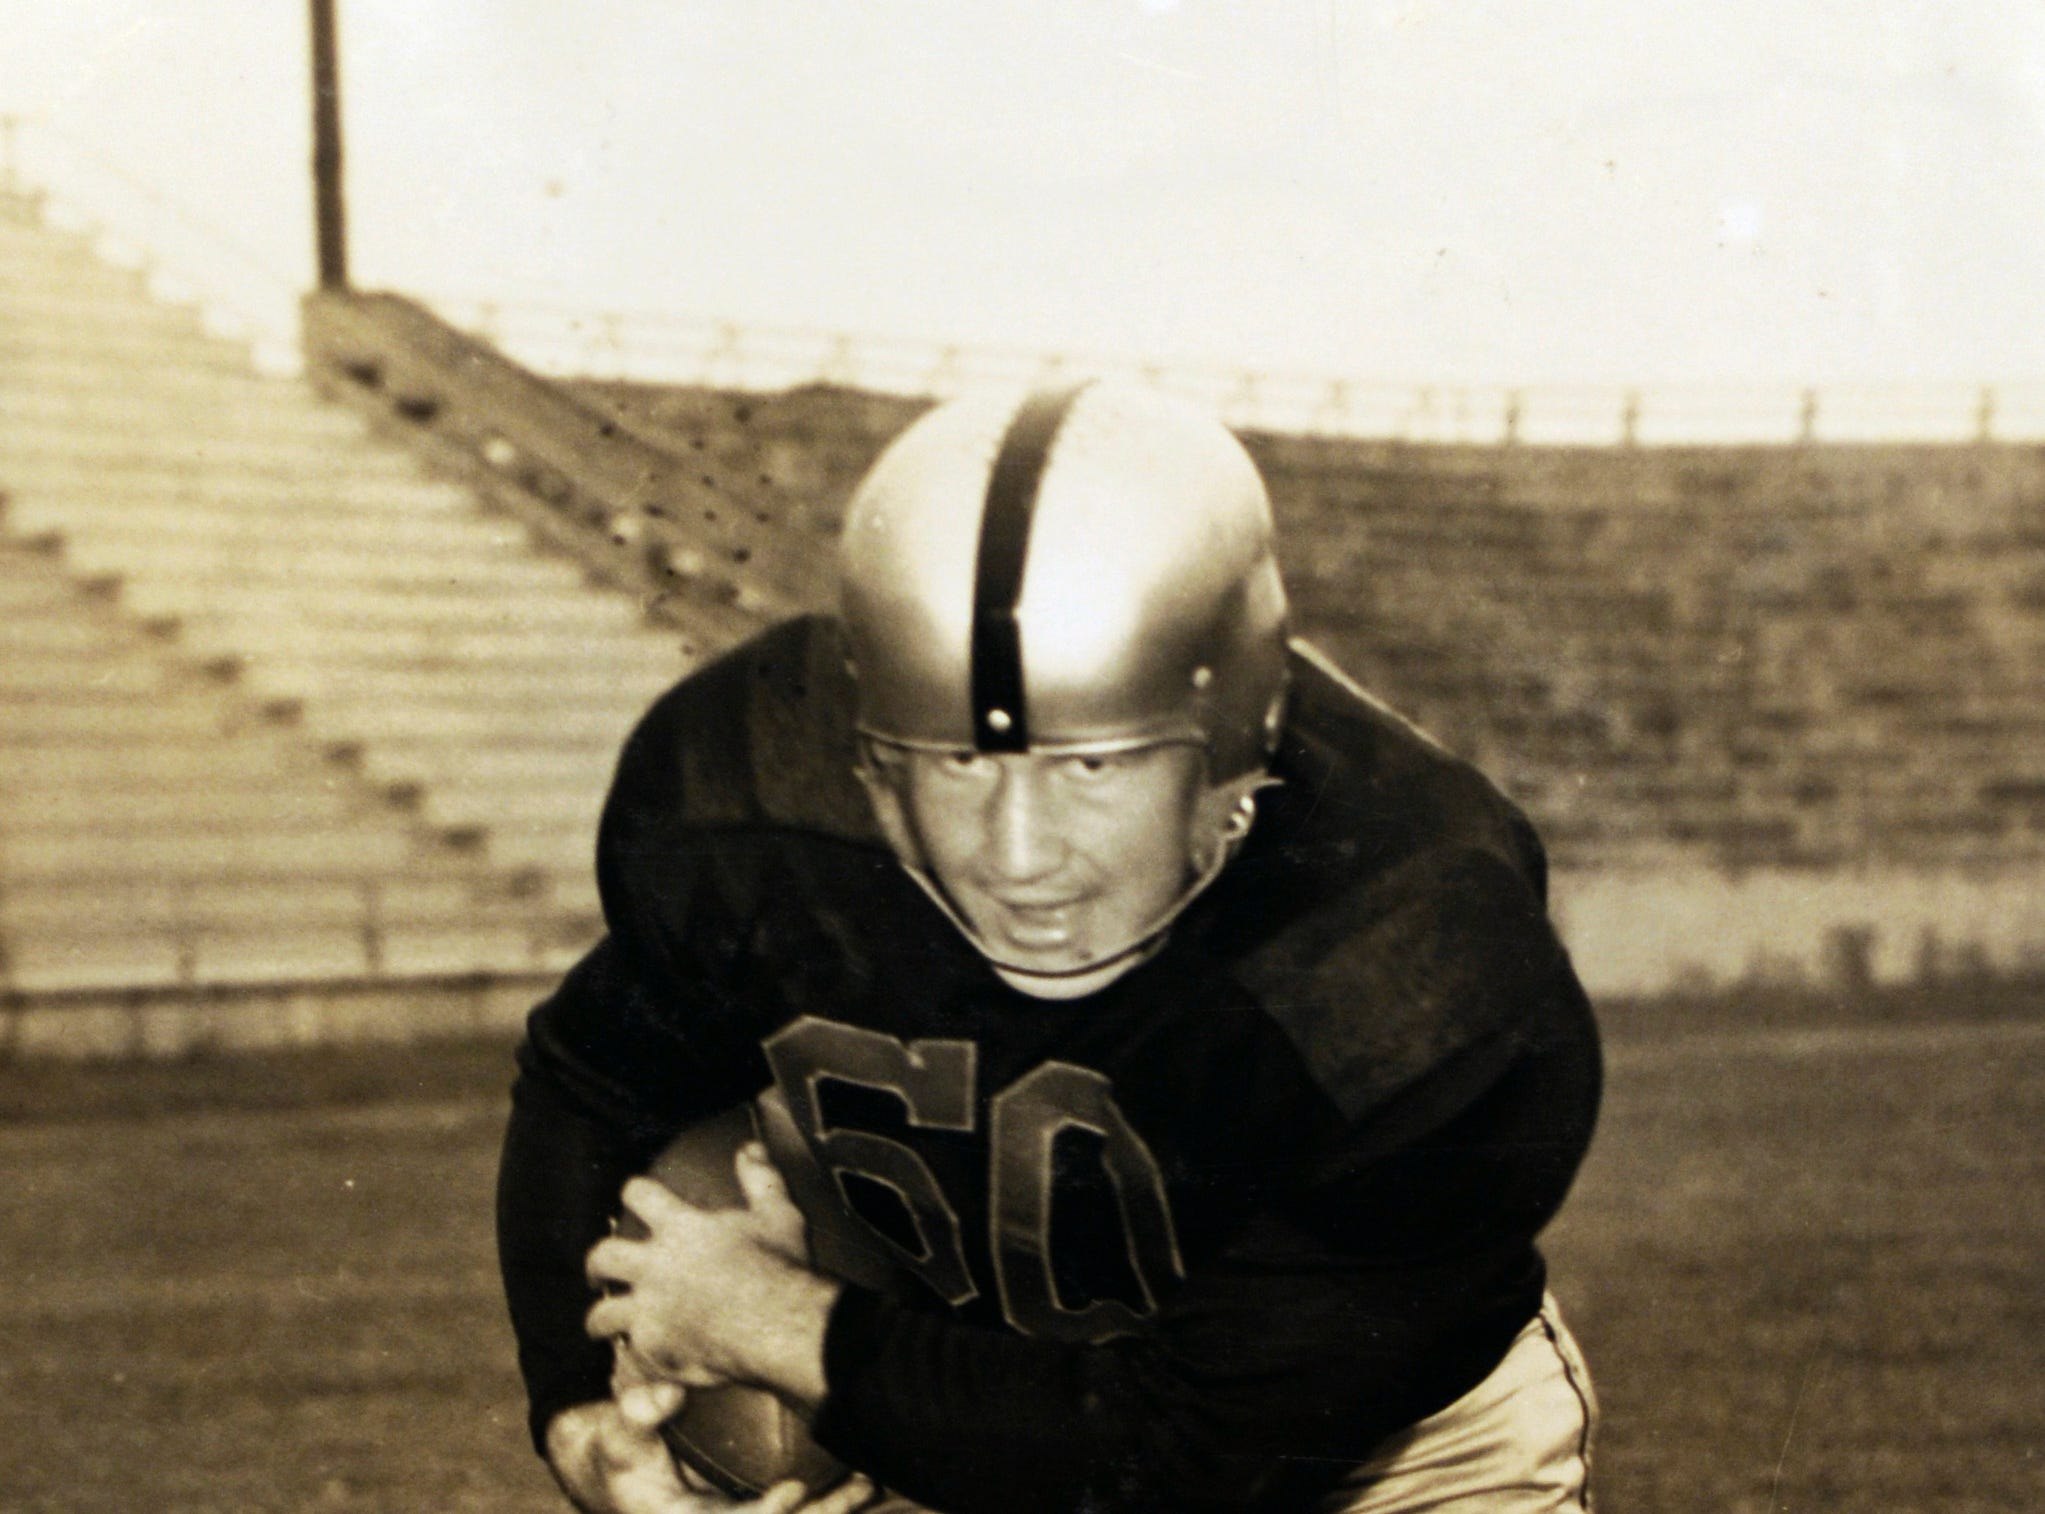 A 1948 photograph of Bill Clabo, who was a Young High School football coach for years, when he played at Wofford College in South Carolina. On Sept. 25, Duff Park in South Knoxville is being renamed in Clabo's honor.